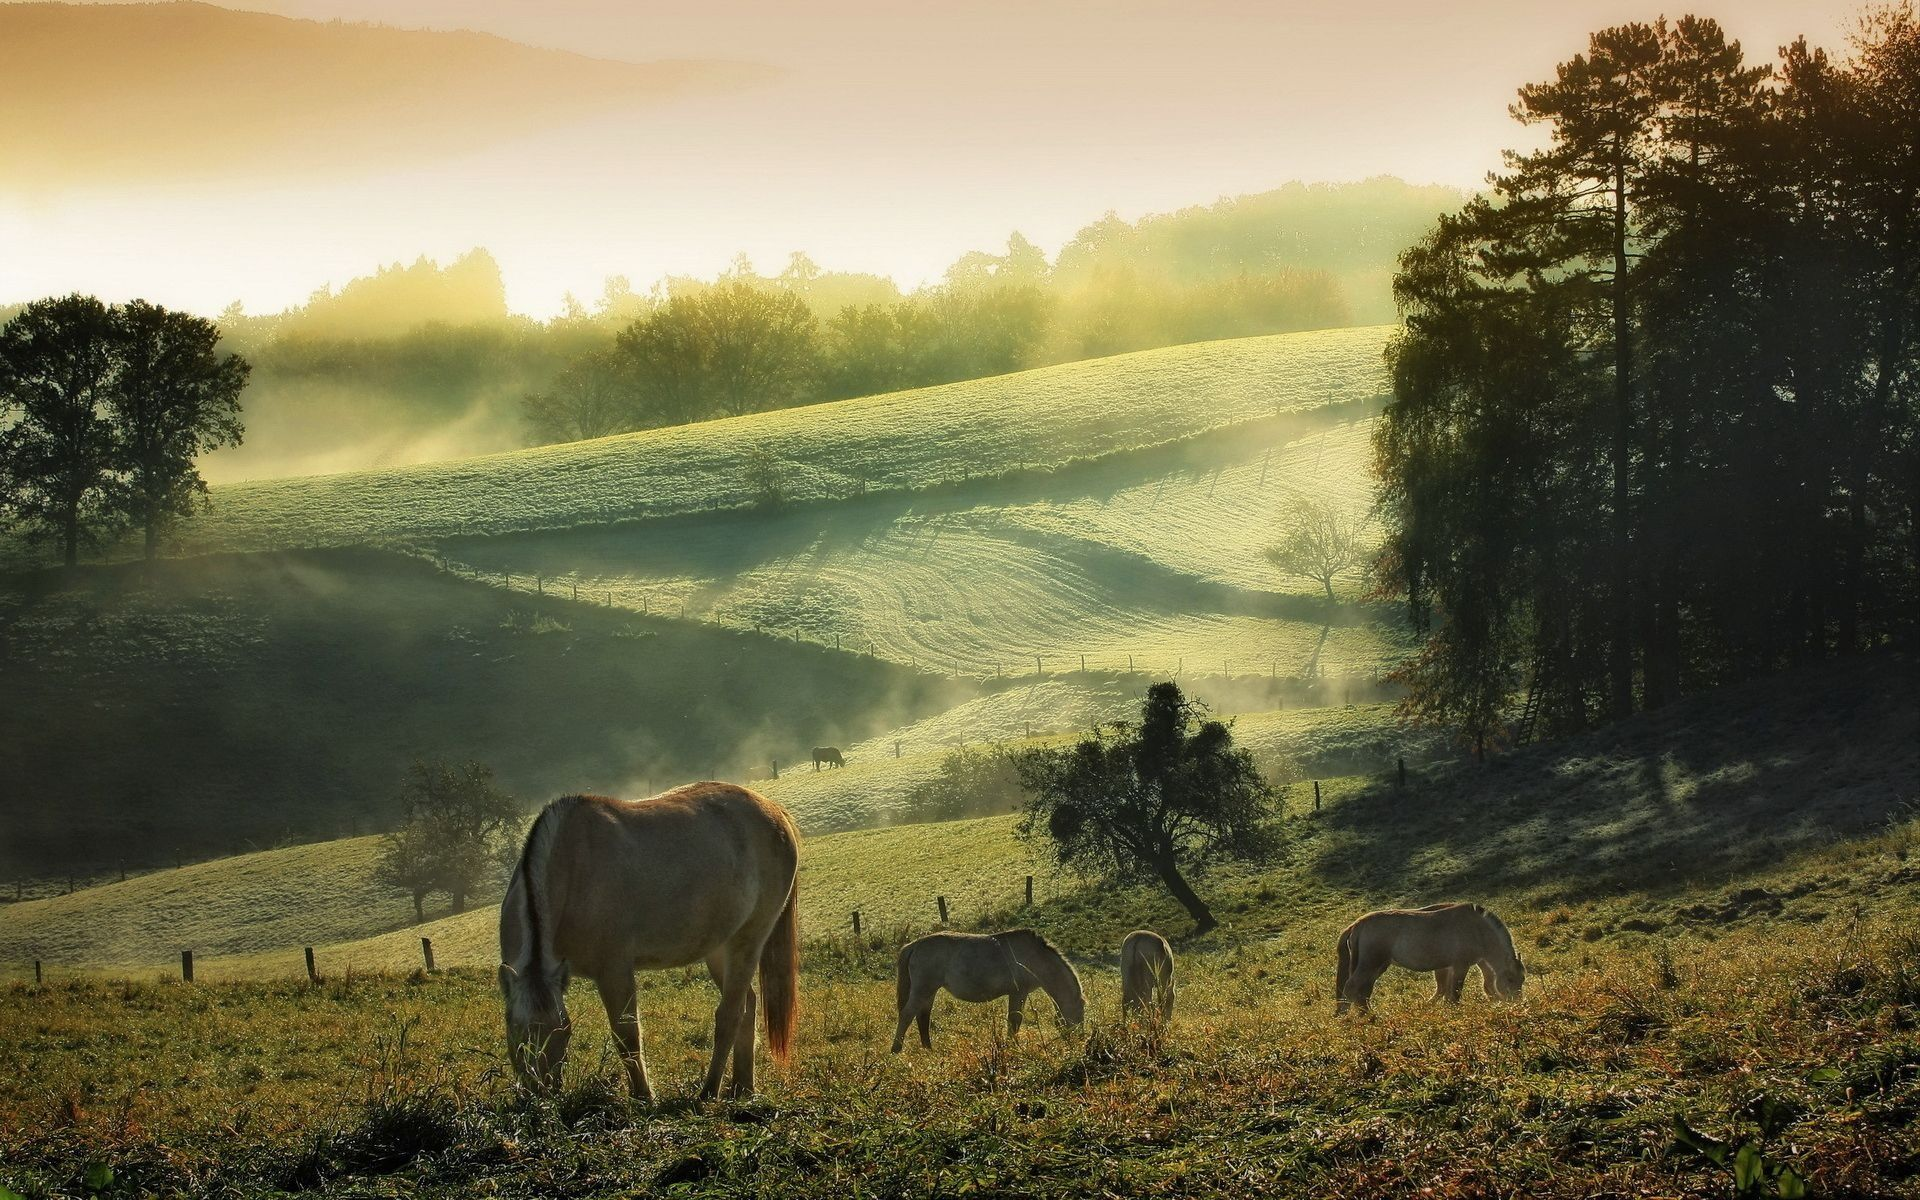 Must see Wallpaper Horse Landscape - 0d483bb262942cf517a713b13f8e8b92  You Should Have_366320.jpg